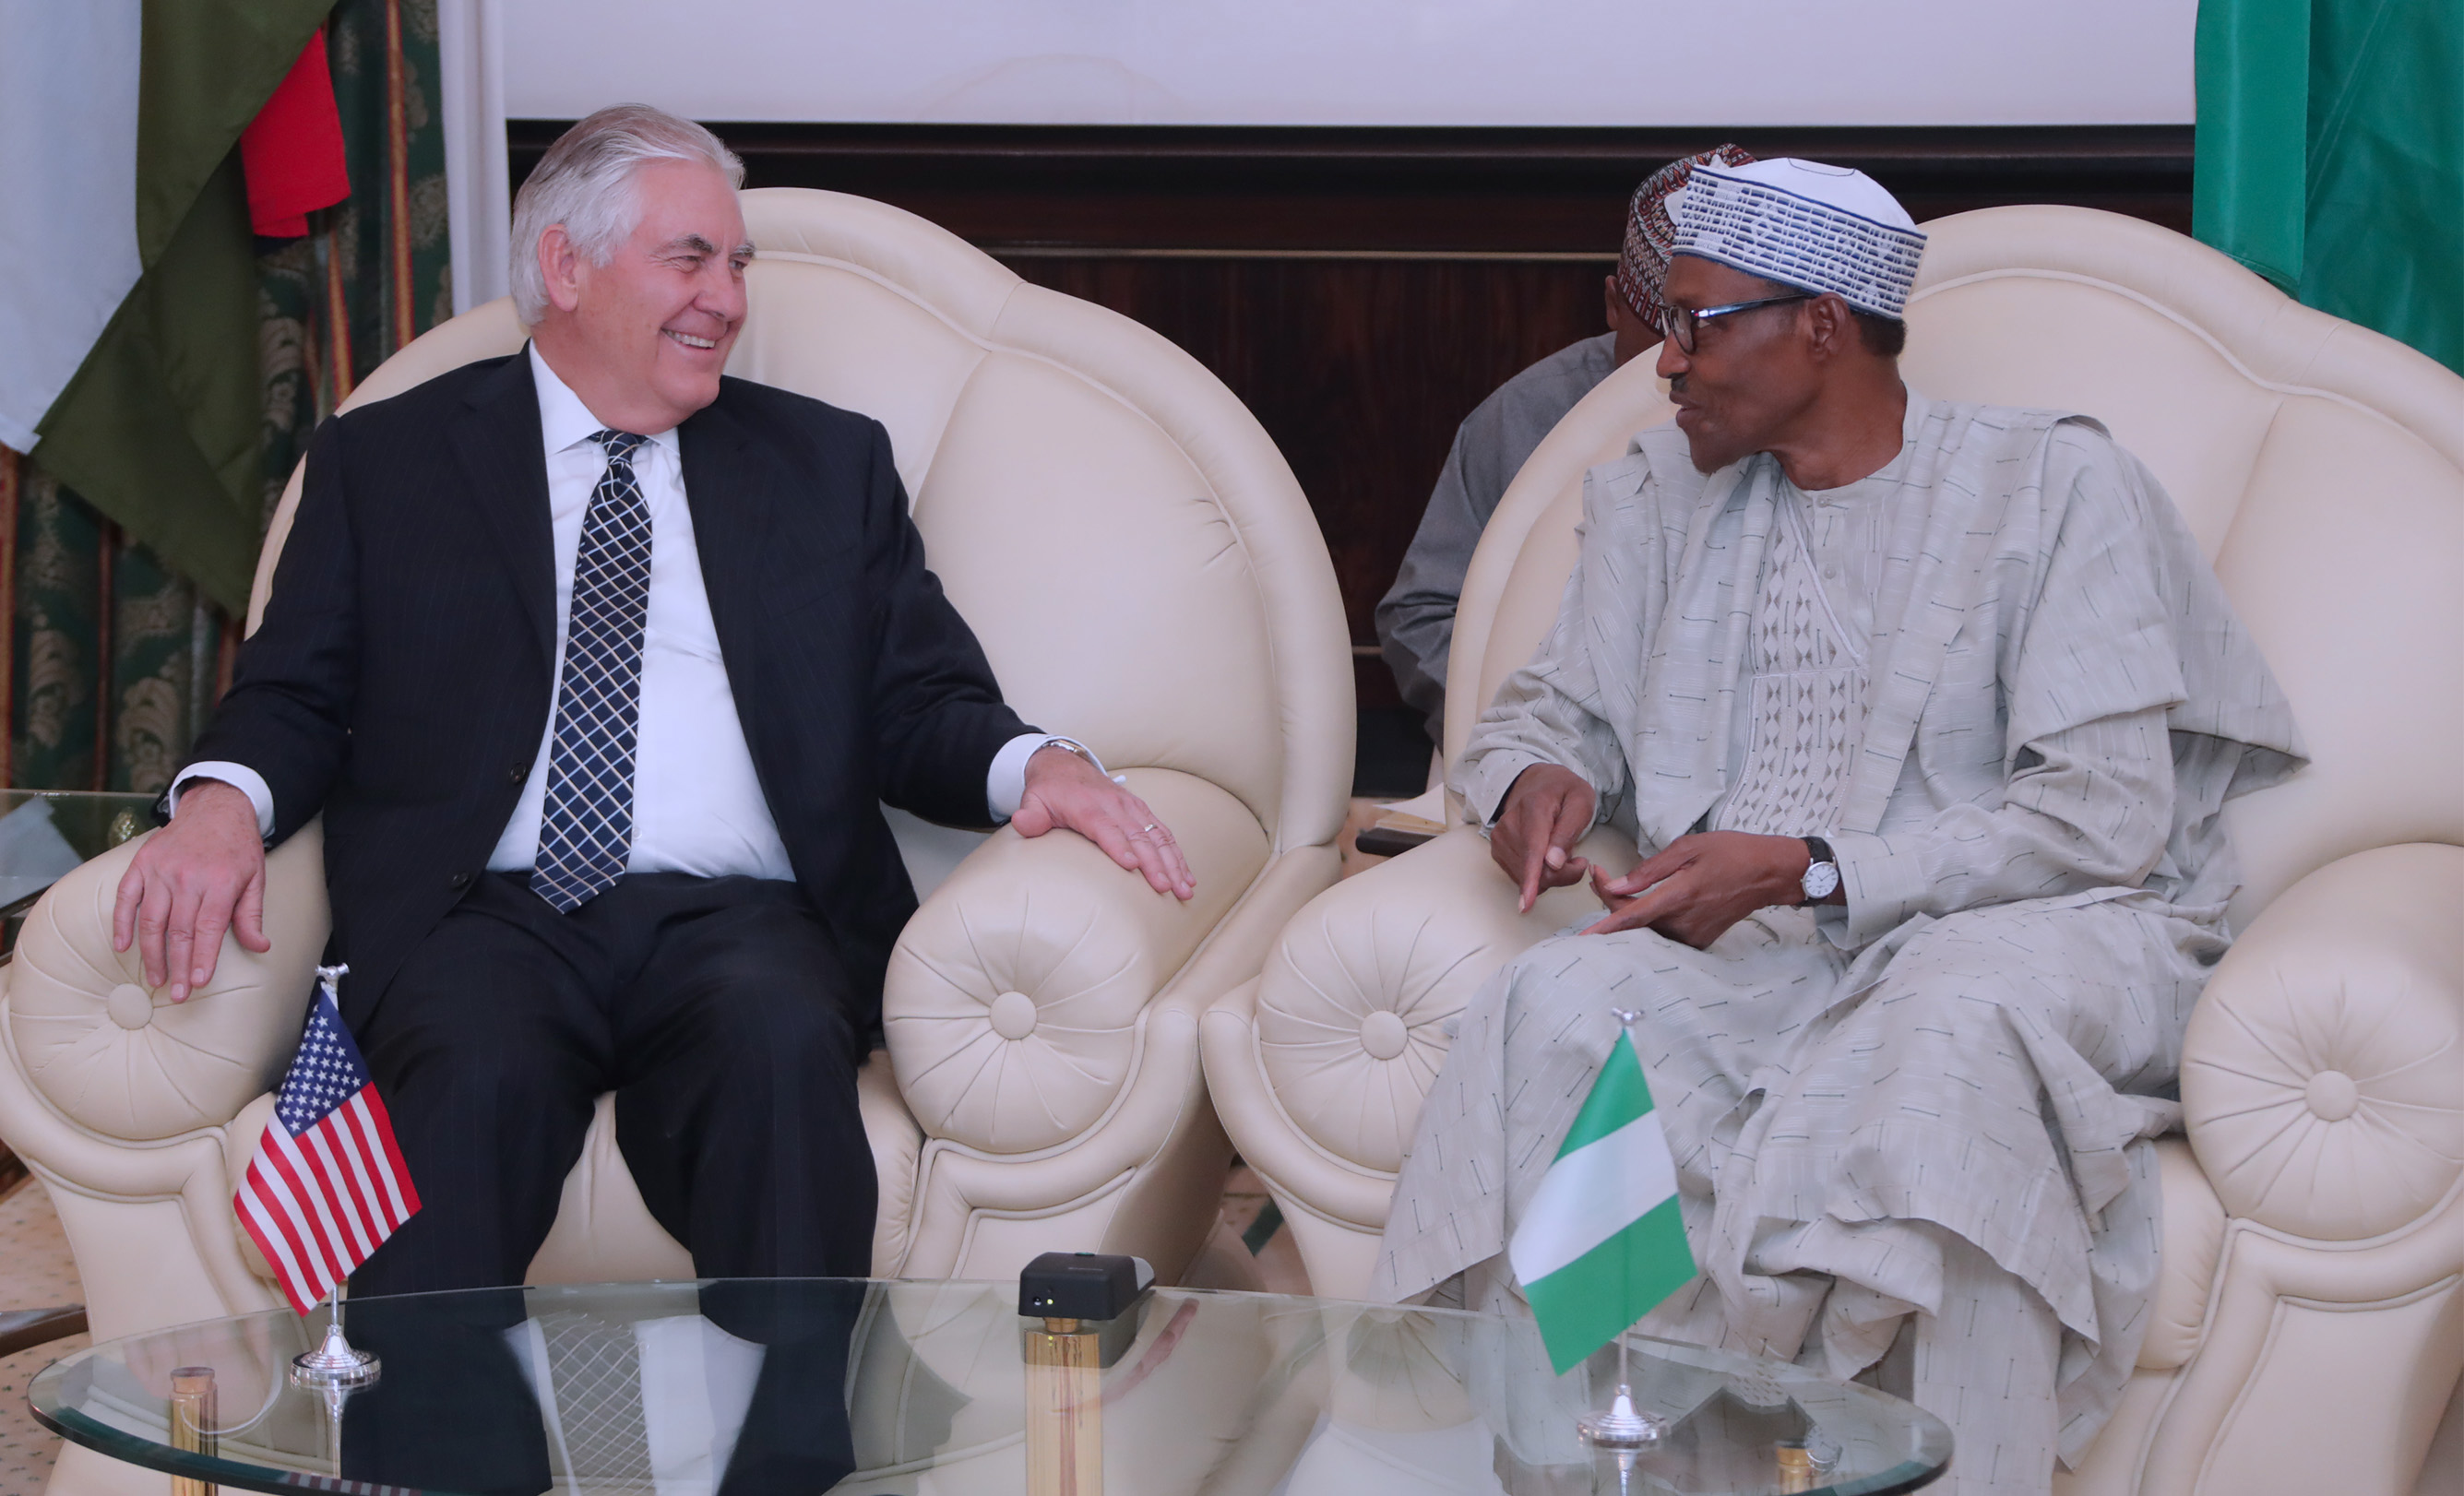 In Pictures: Tillerson visits Nigeria